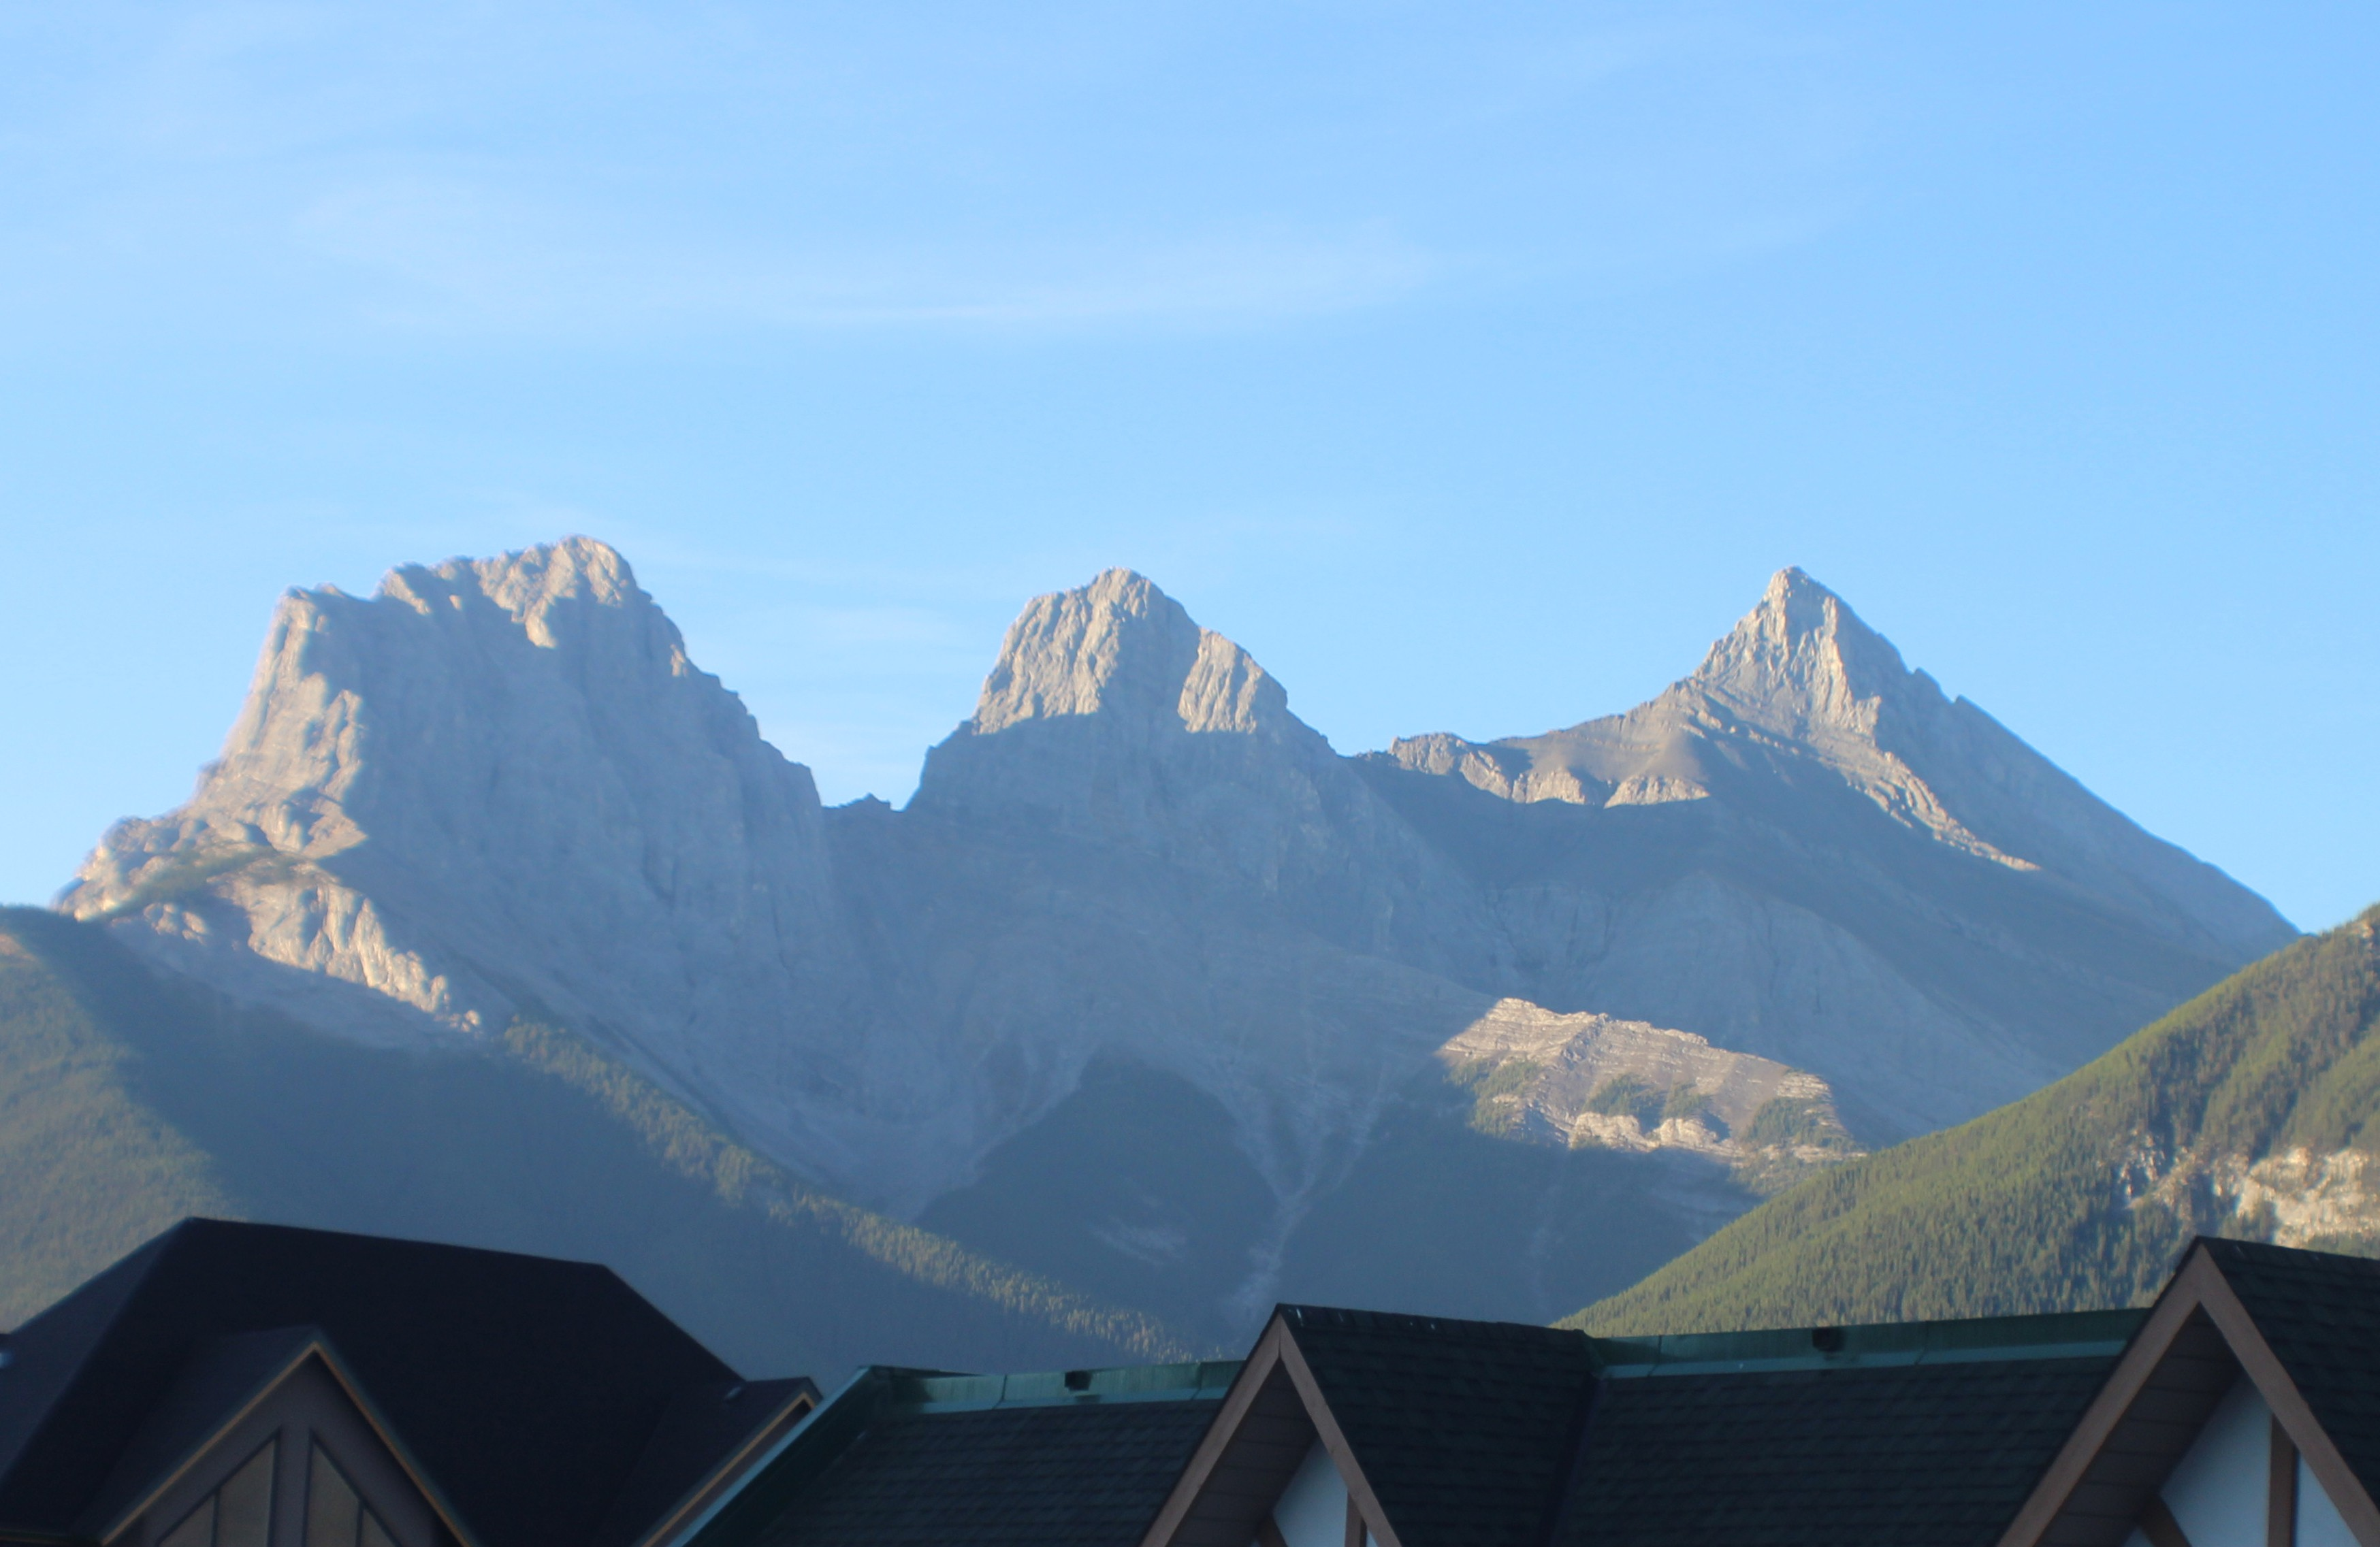 The view from our hotel room of the Three Sisters